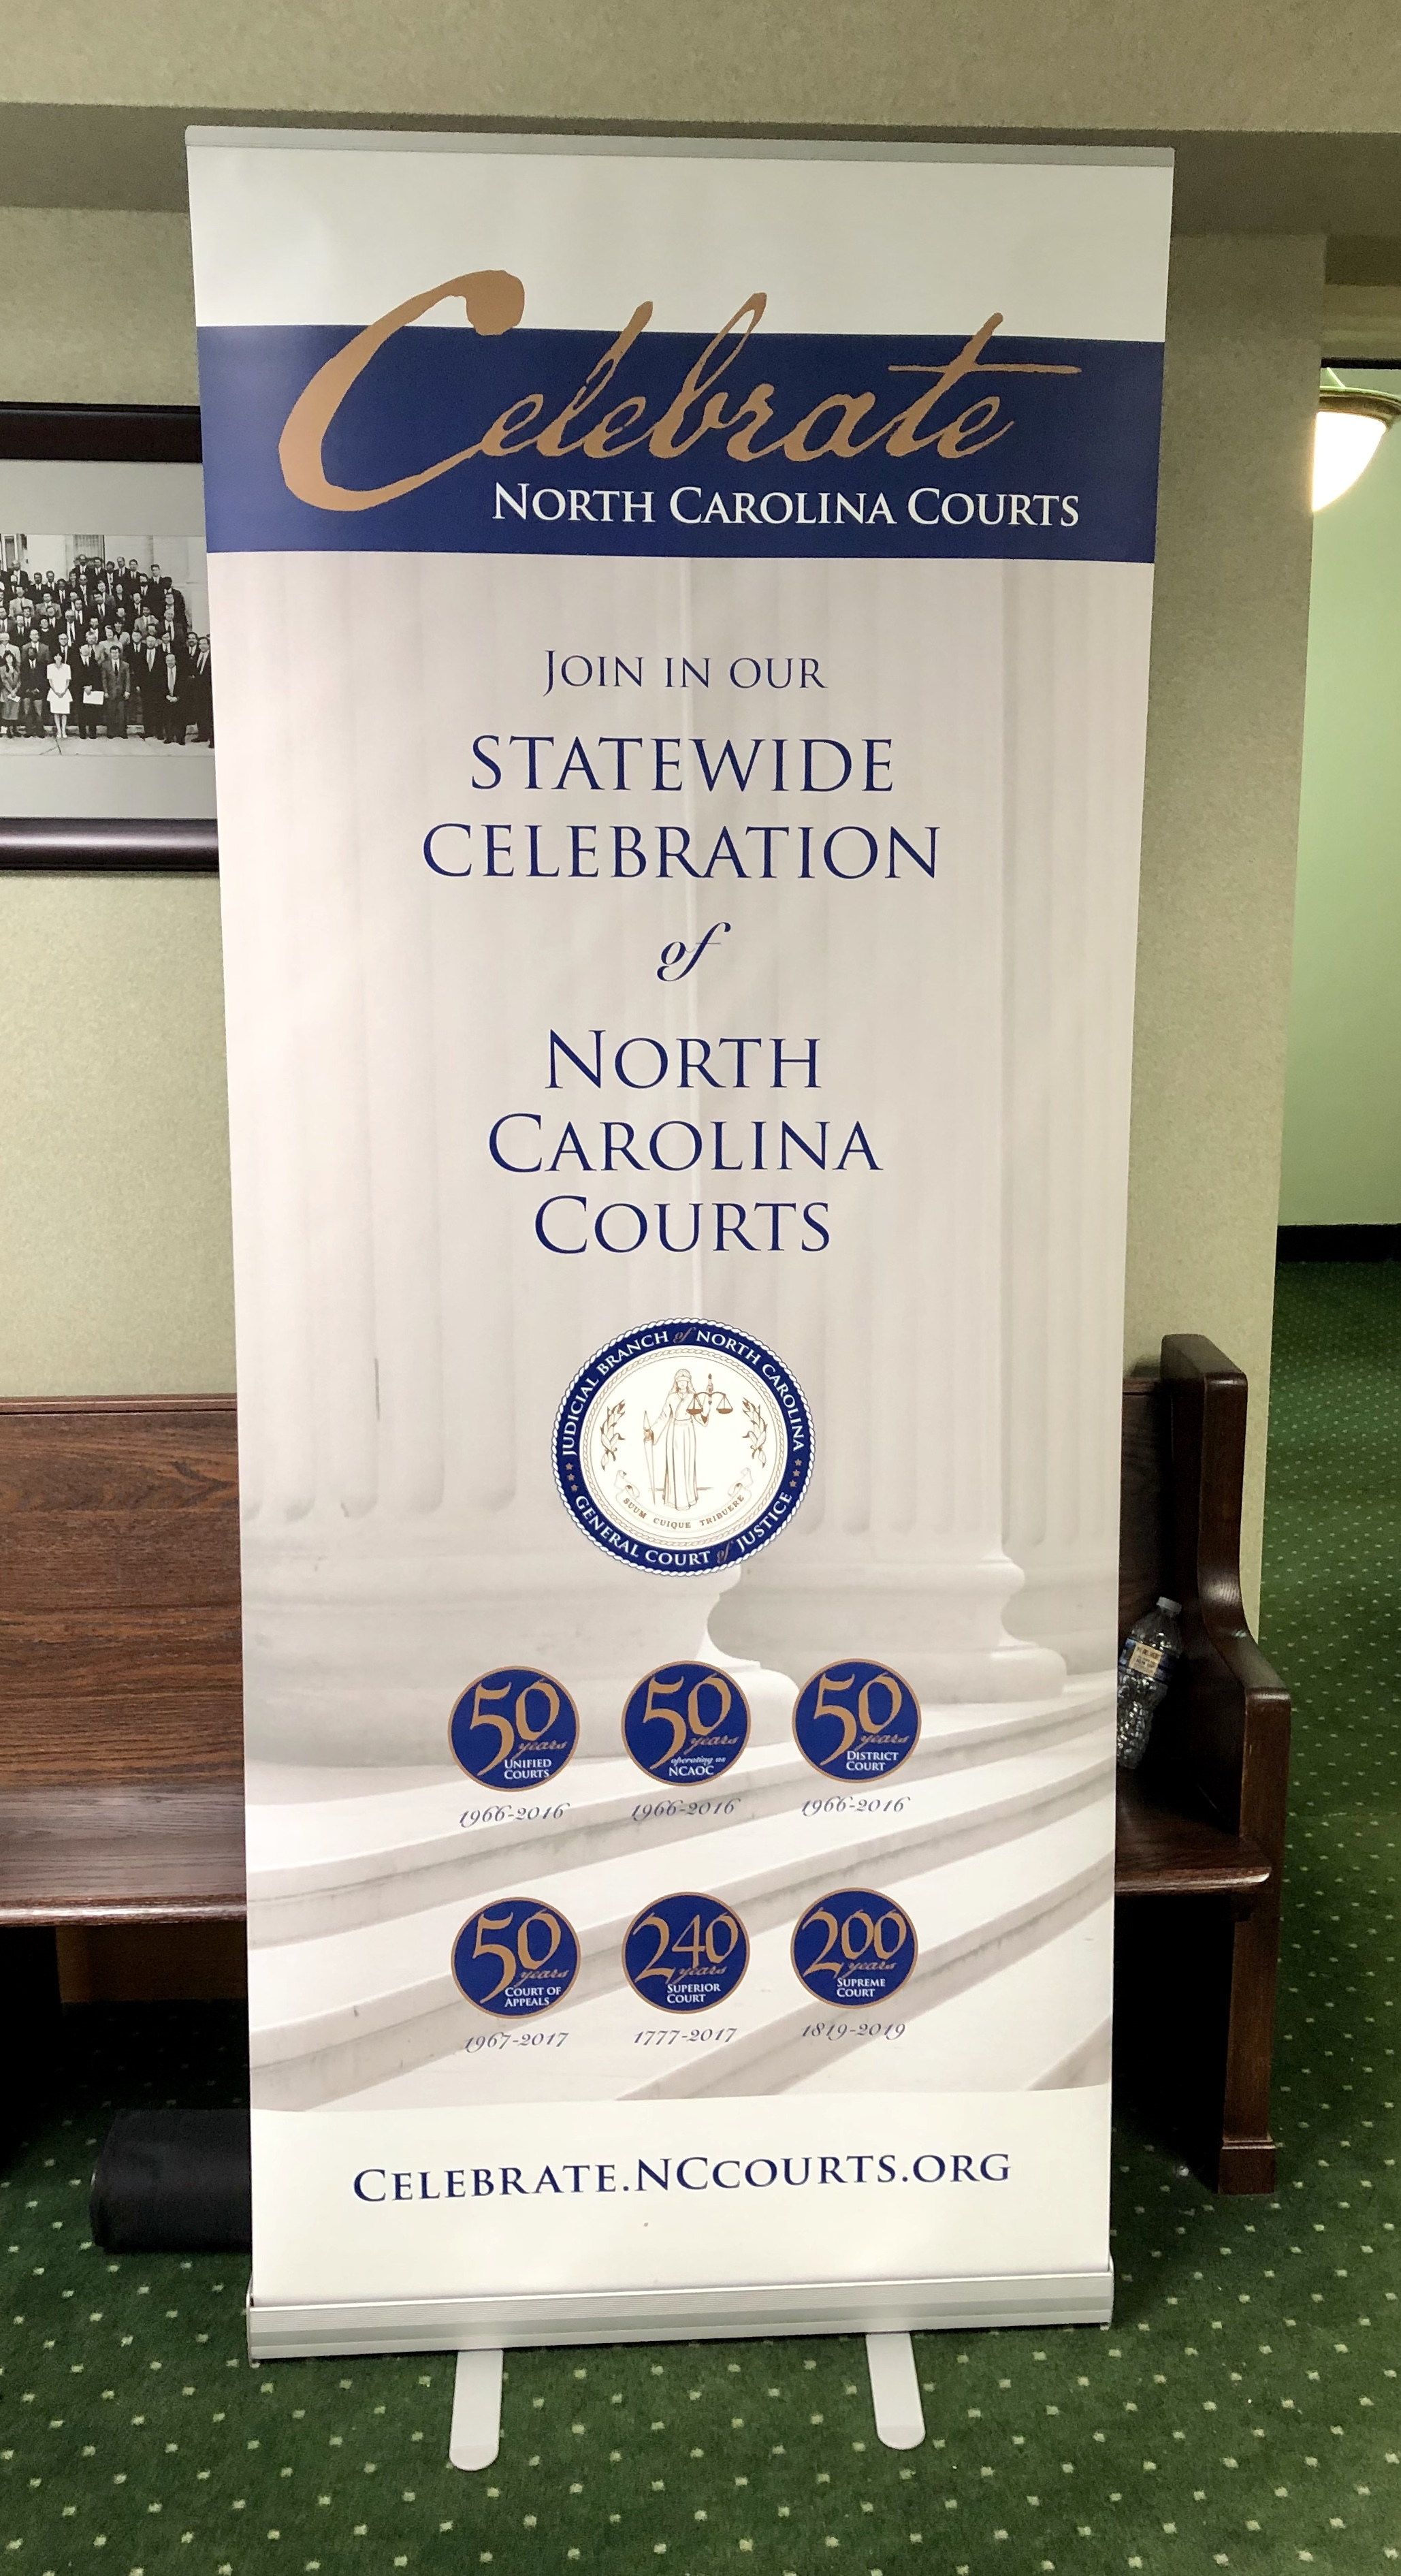 Tuesday's session was part of a statewide celebration of the courts. Photo by Catherine Hardee / Neuse News